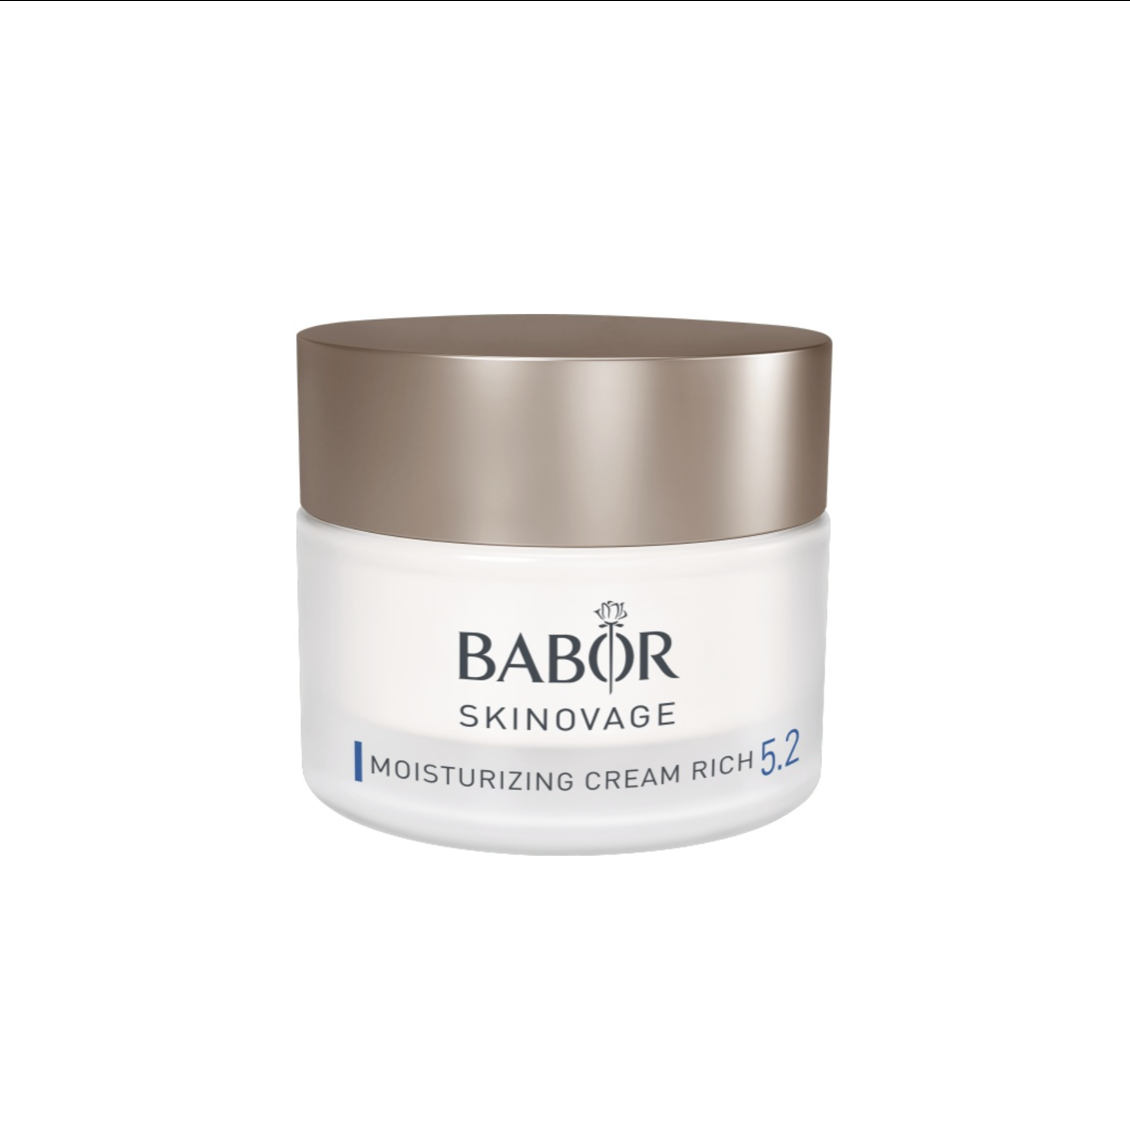 Babor Skinovage, Moisturizing Cream Rich